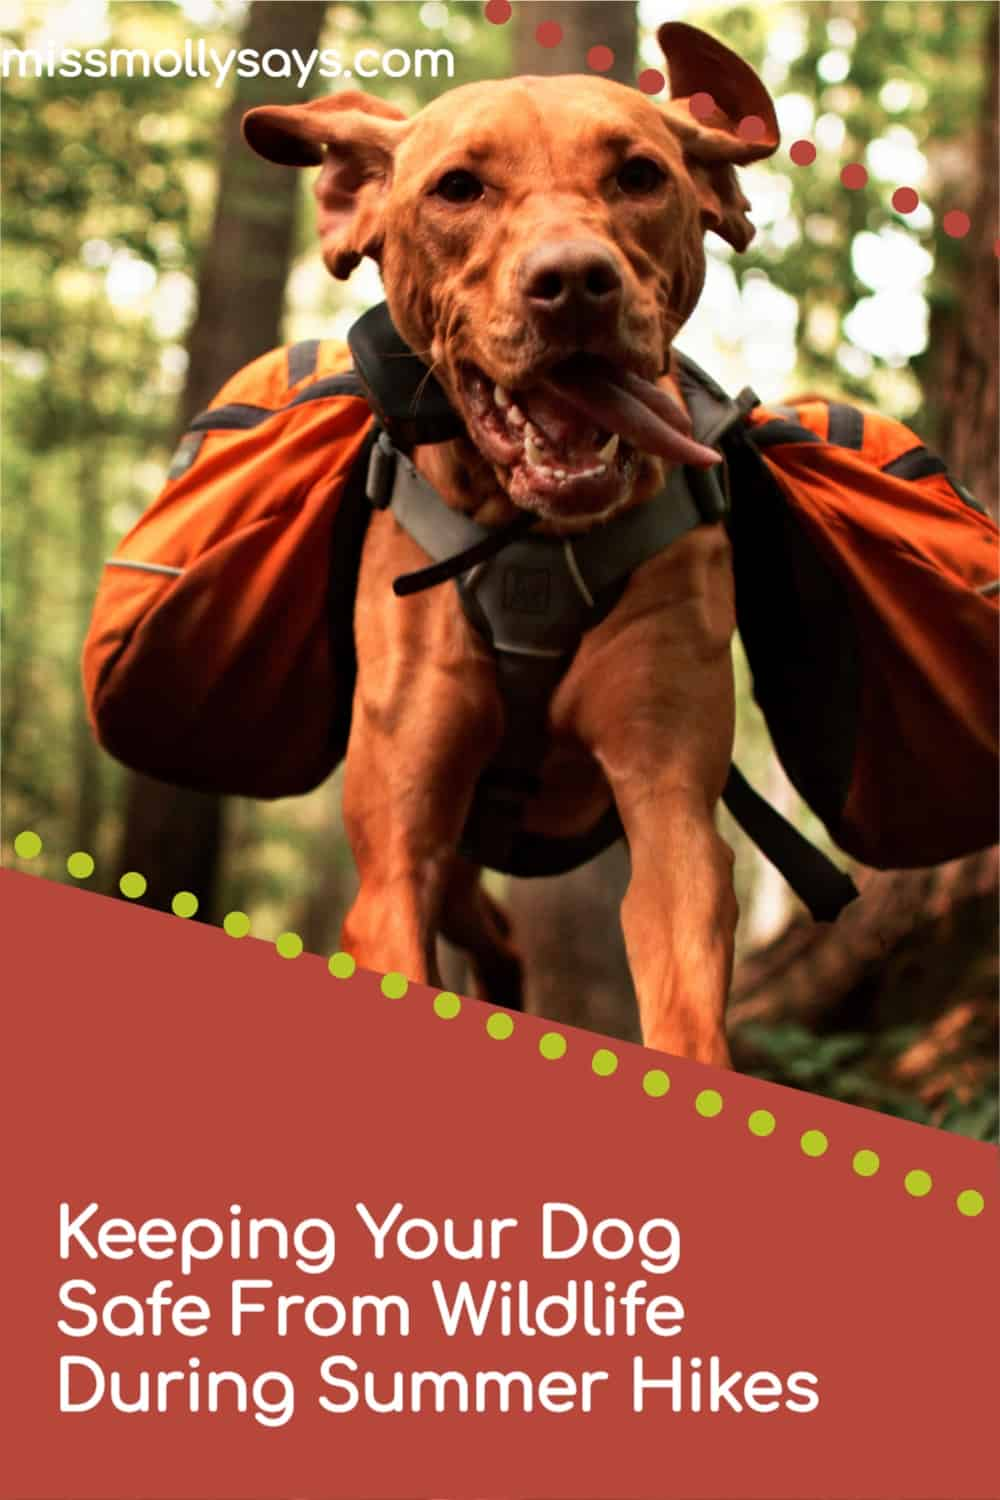 Keeping Your Dog Safe From Wildlife During Summer Hikes